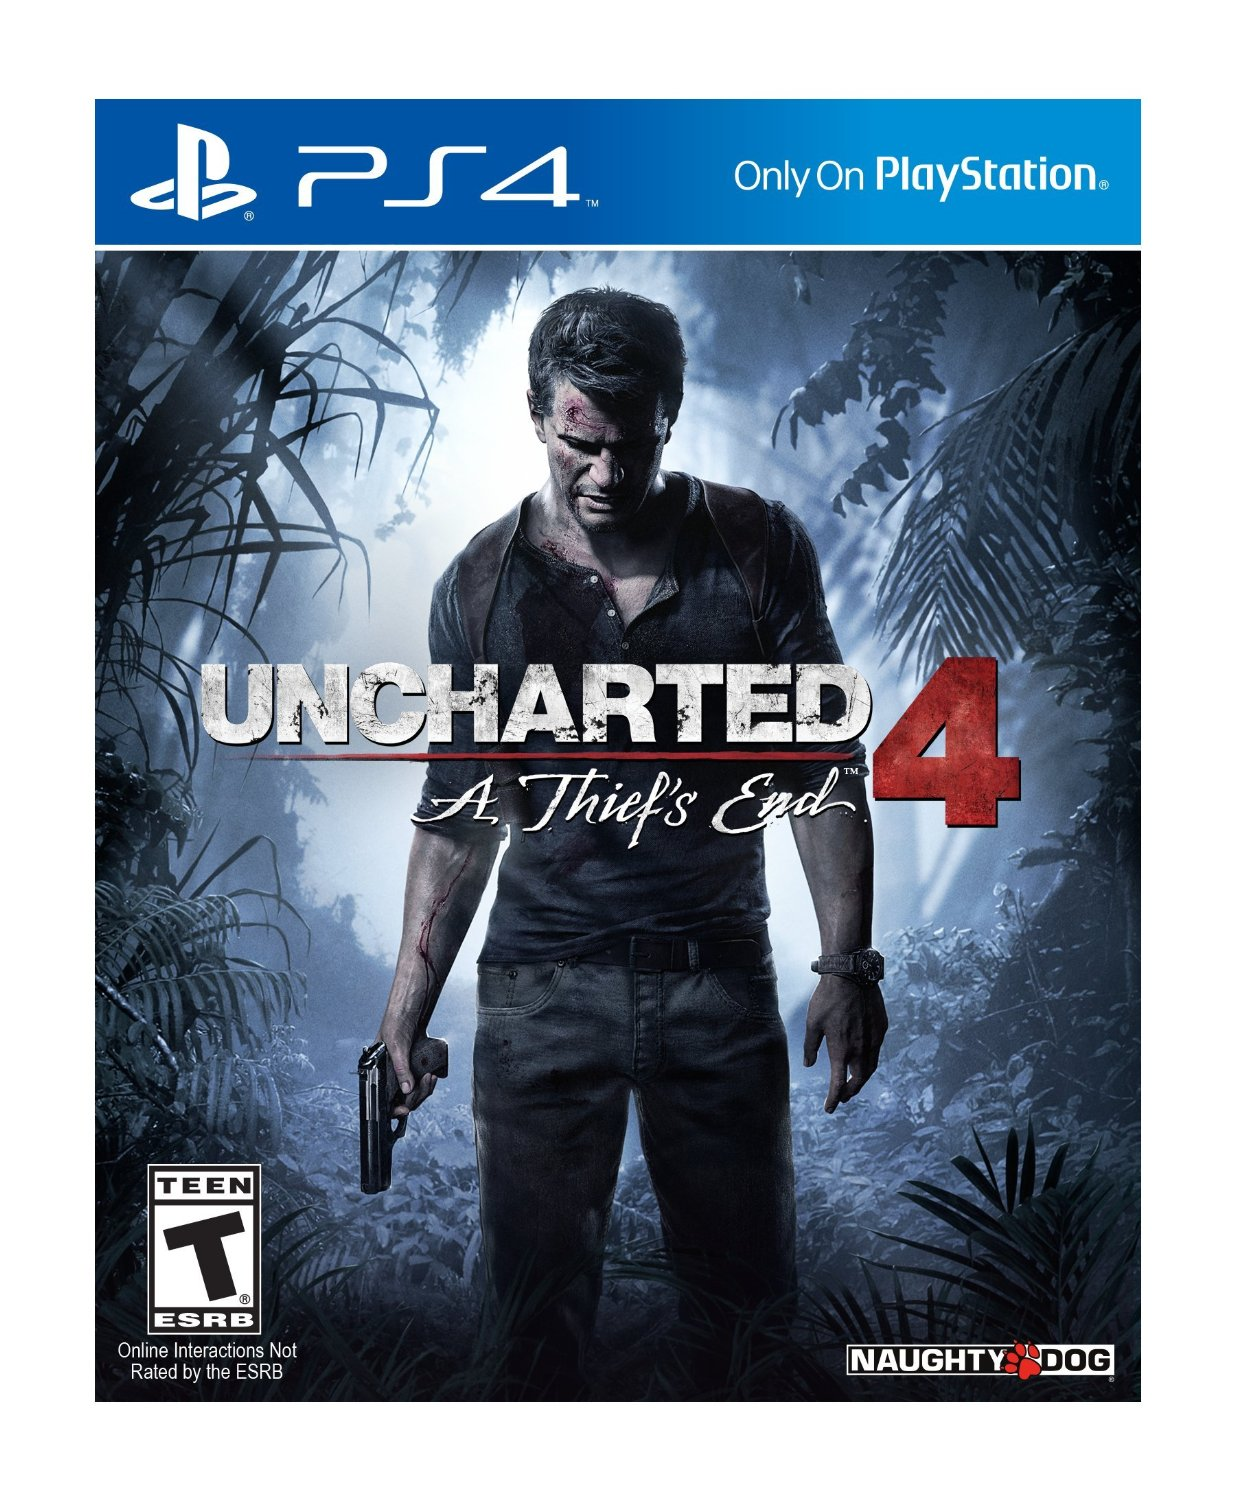 New Games: UNCHARTED 4 - A THIEF'S END (PS4) | The Entertainment Factor